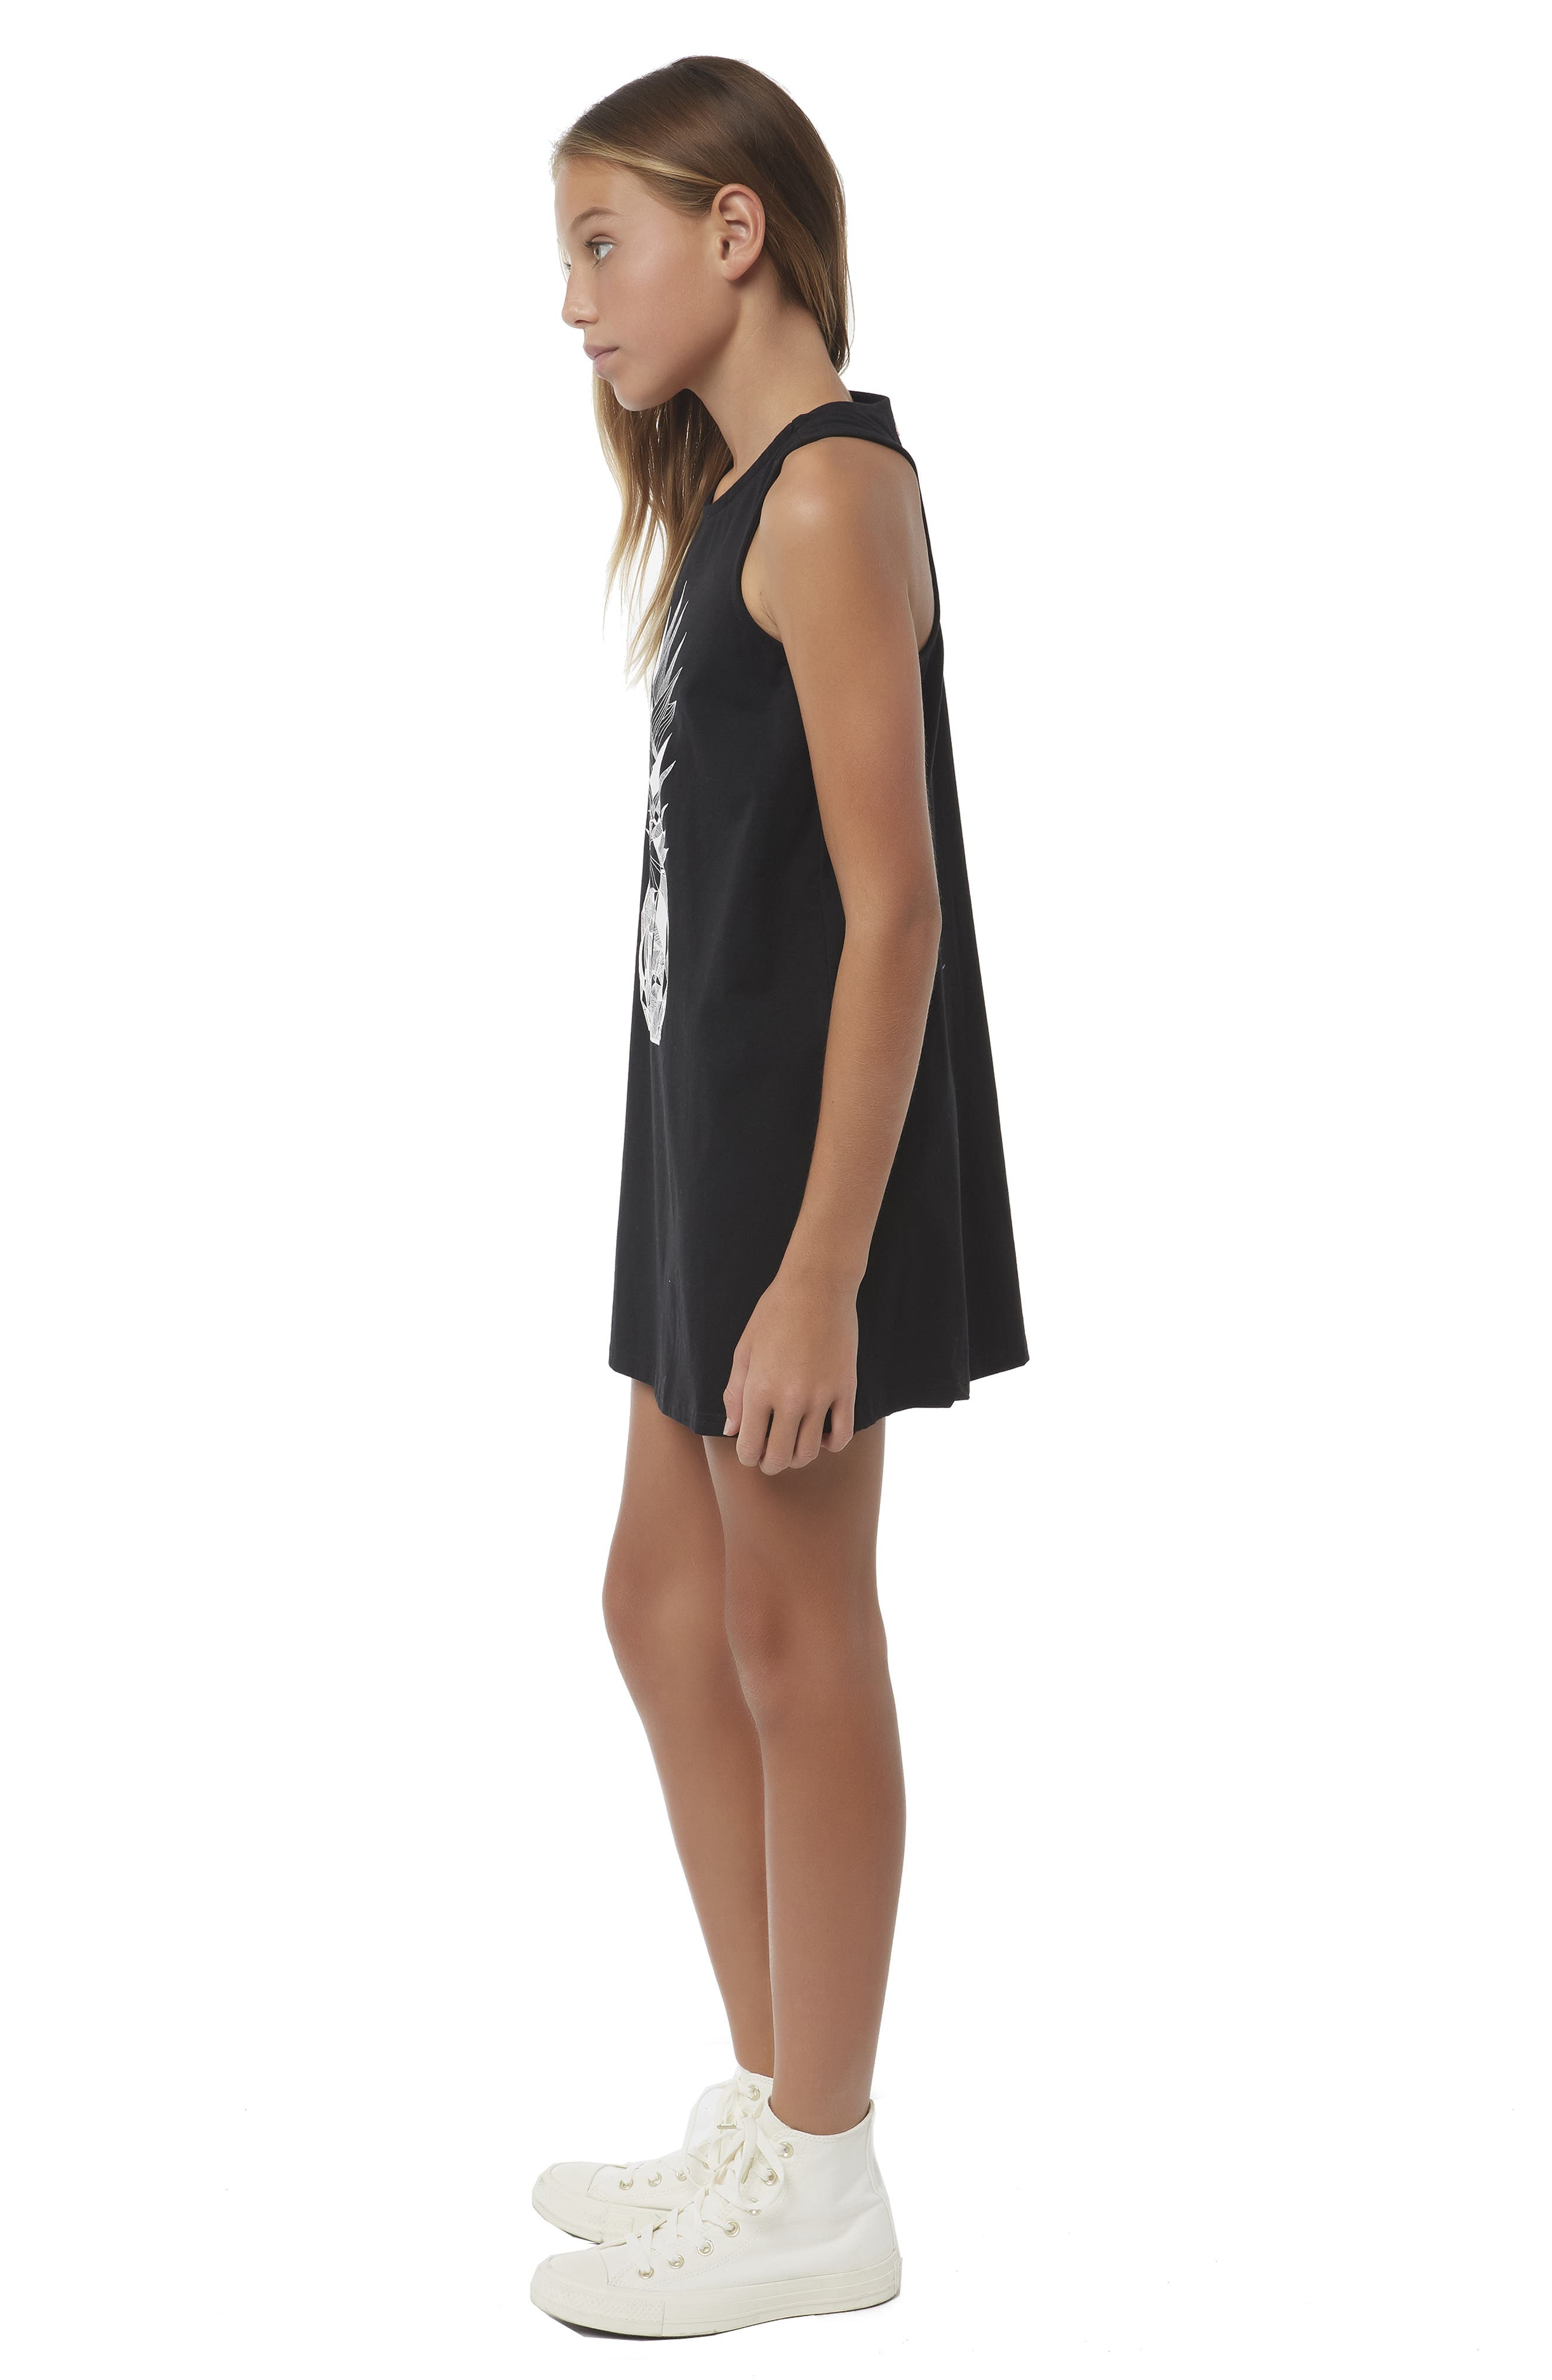 O'NEILL, Cannon Knit Tank Dress, Alternate thumbnail 6, color, BLACK